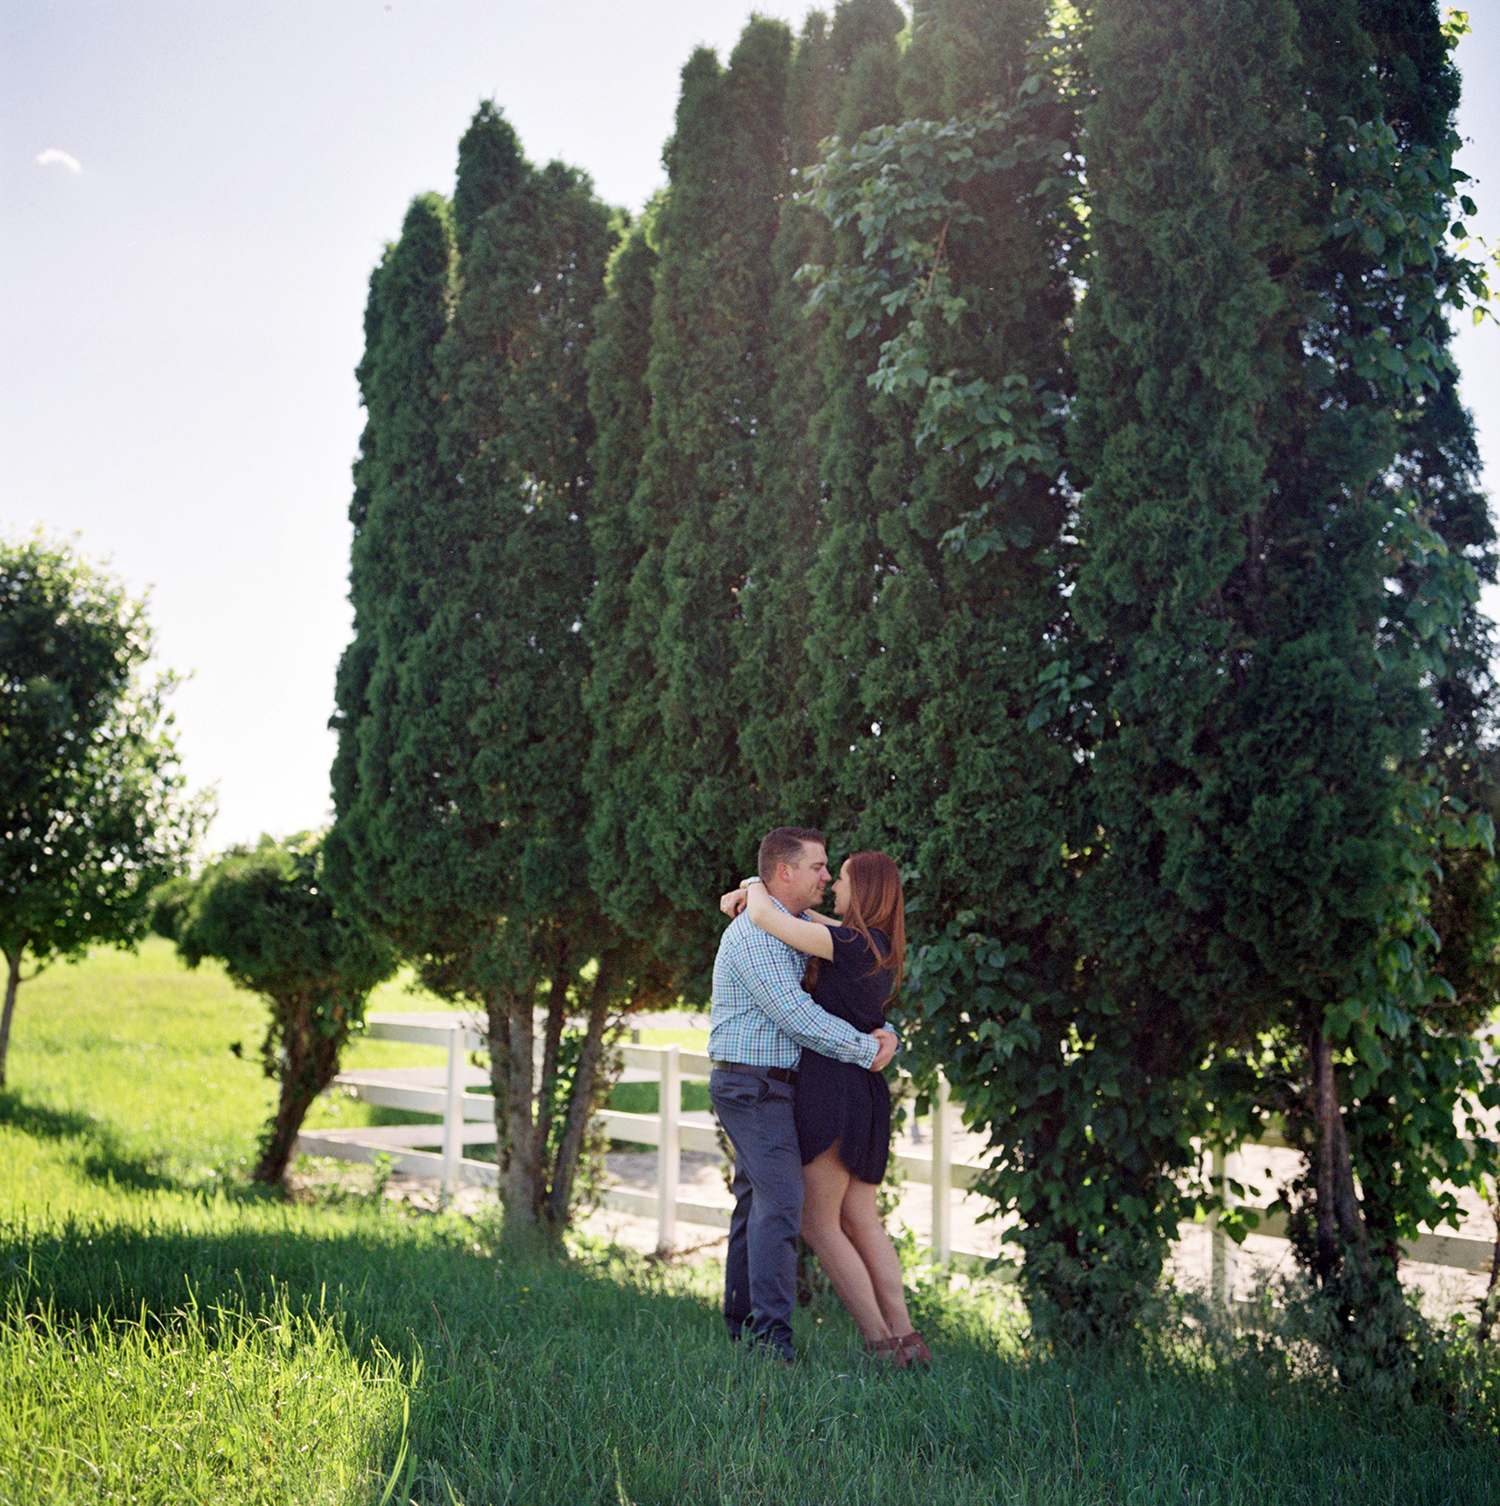 Lauren+AJ | Warwick Winery Engagement Session-Candid Photography-FILM- Olivia Christina Photography